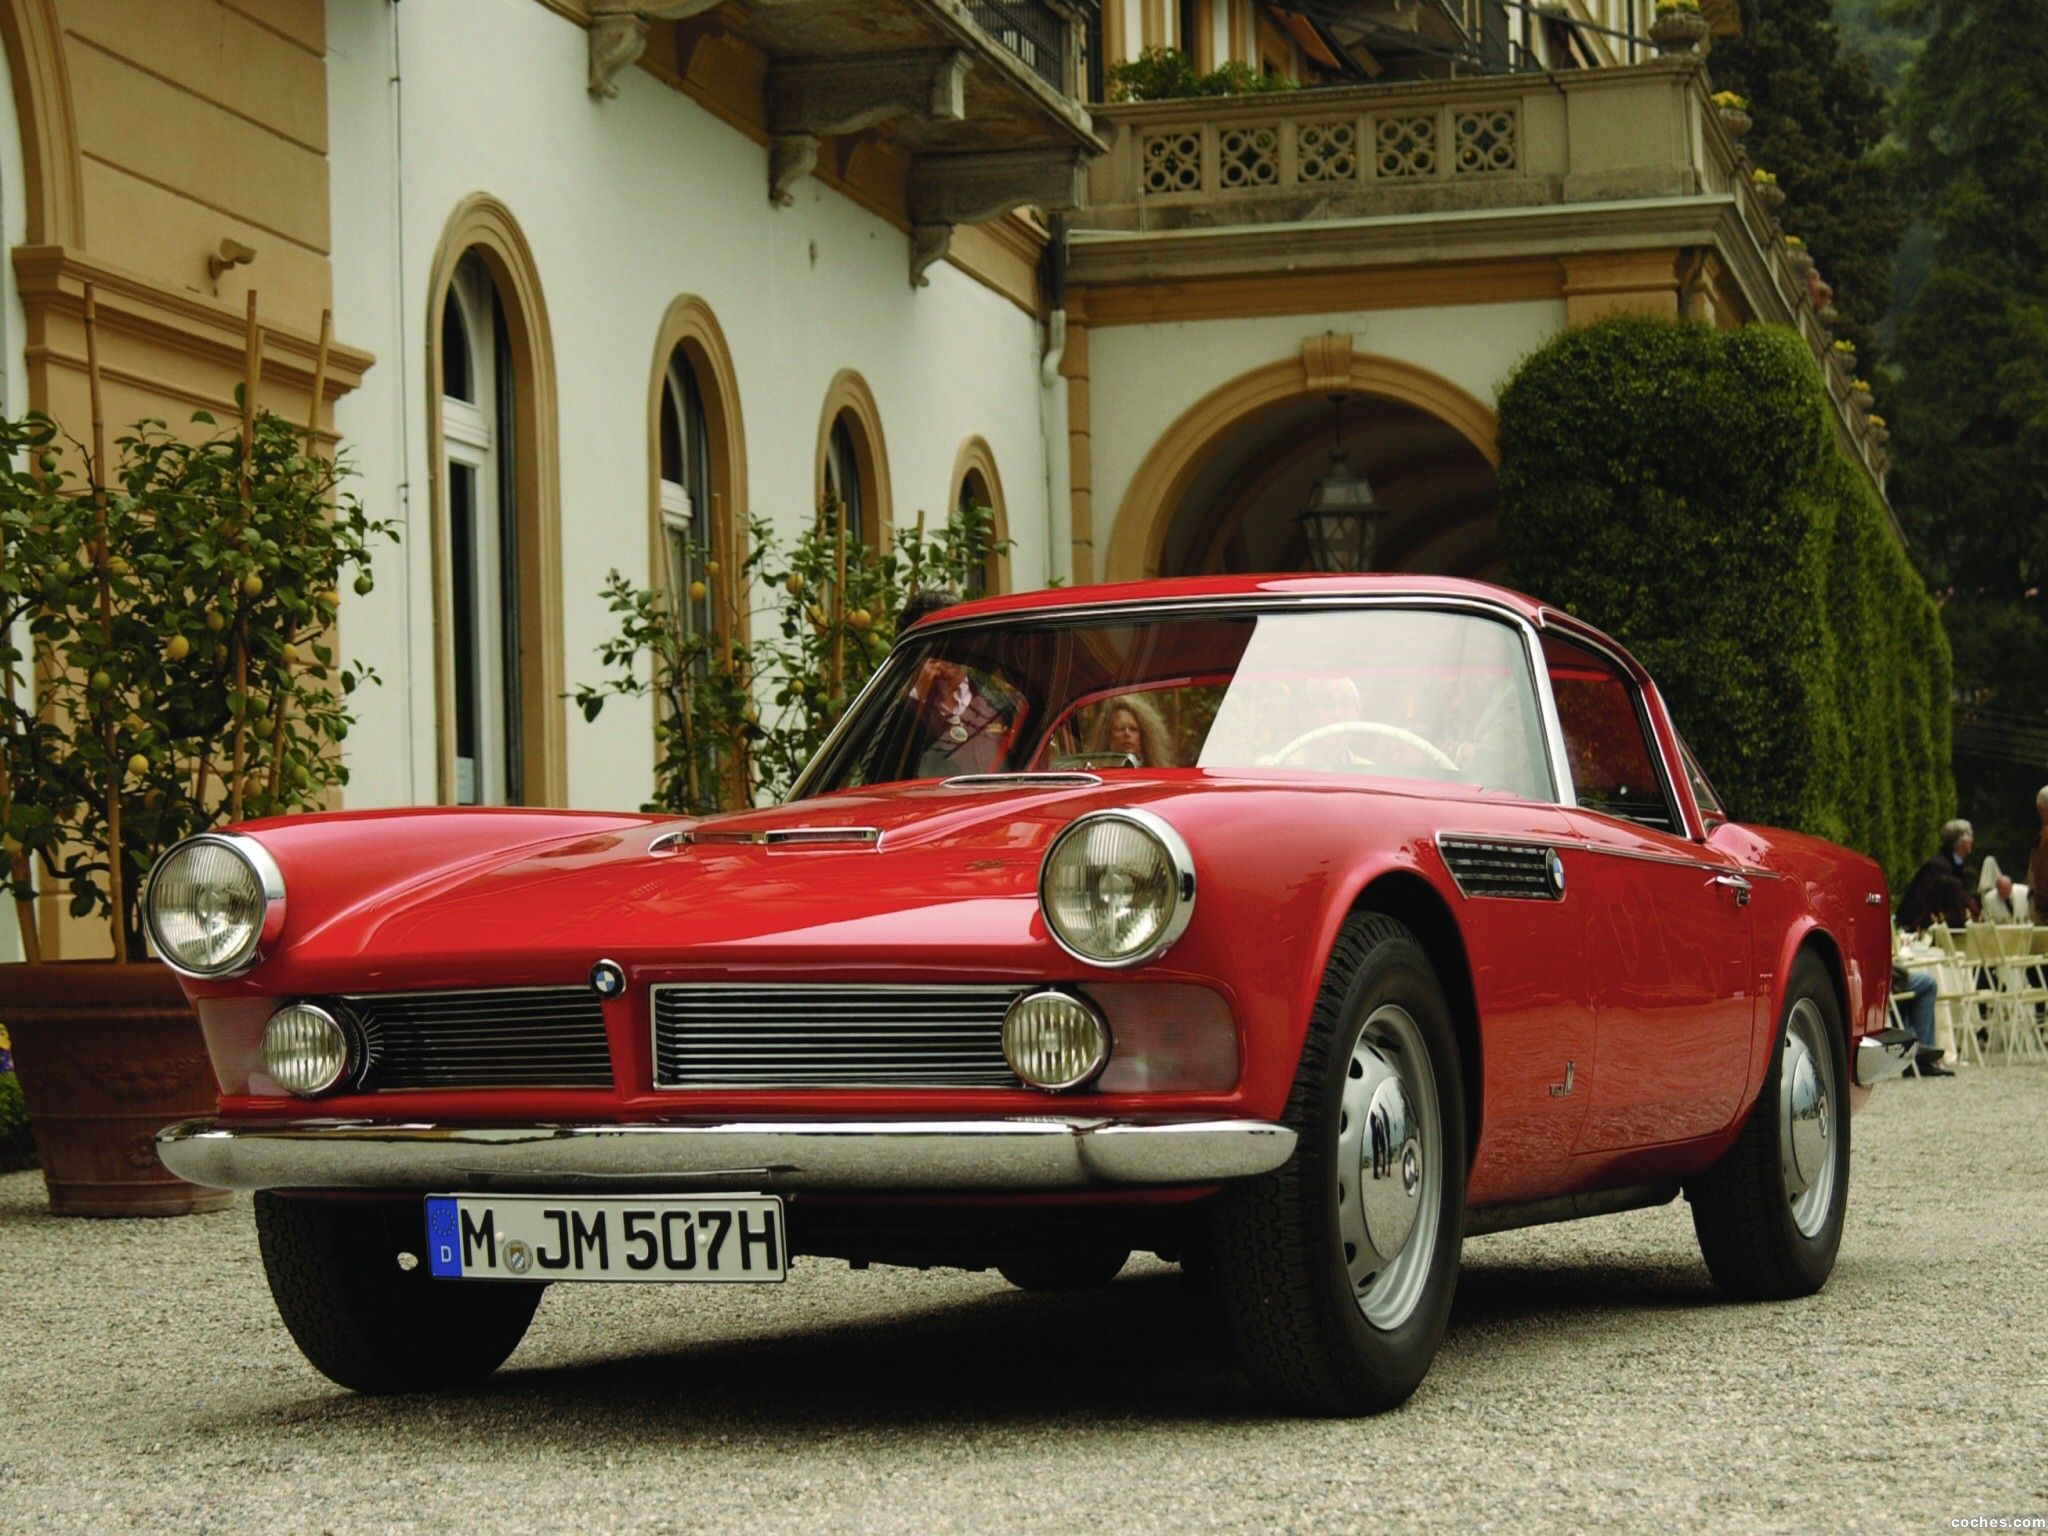 BMW 507 1955 | Ride with style | Pinterest | BMW and Cars